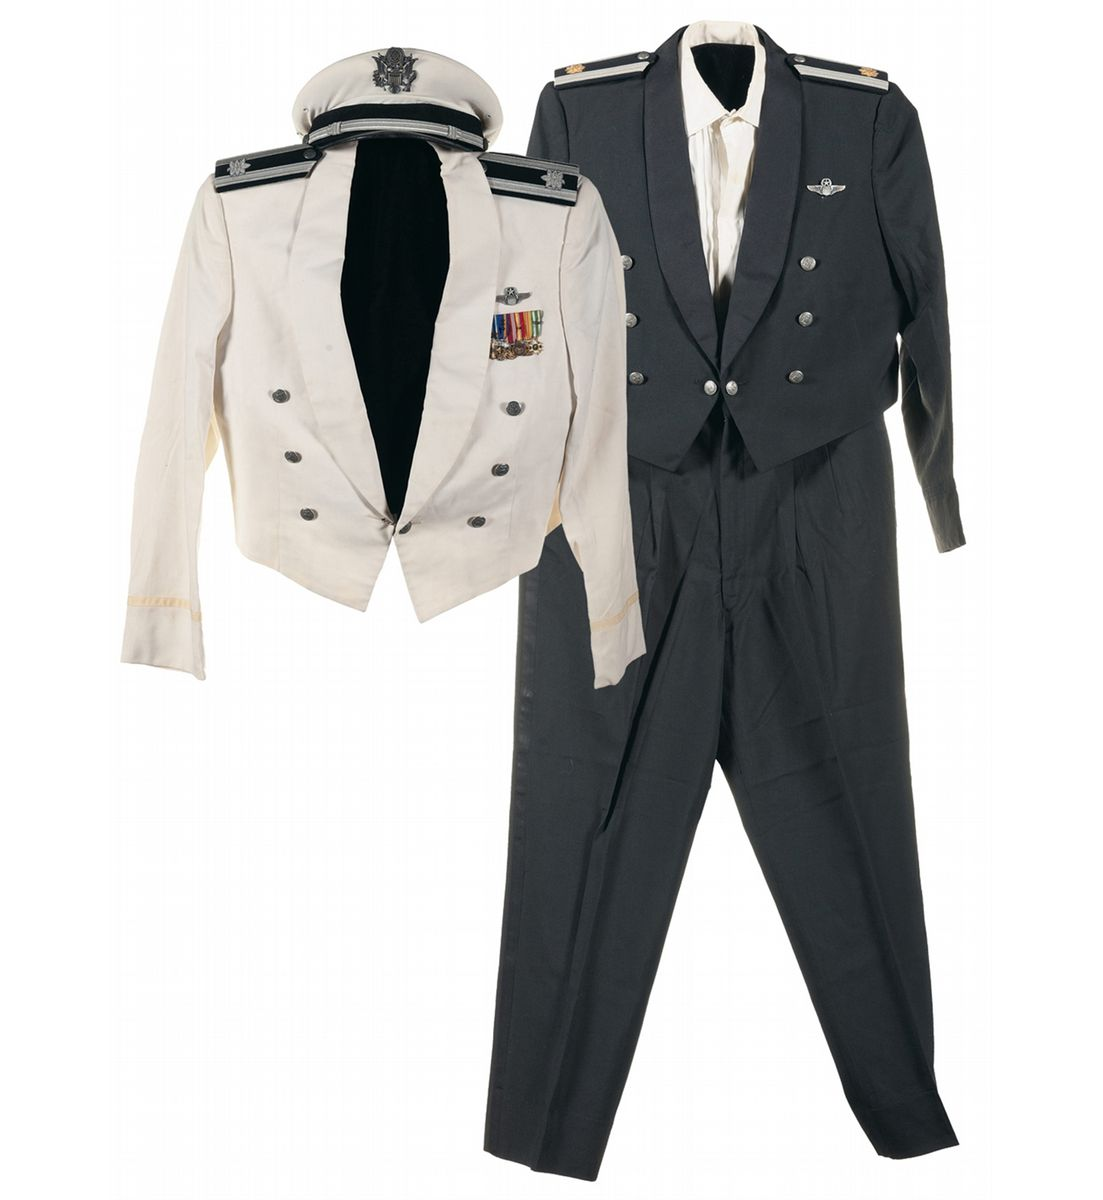 Luxury Book Of Womens Mess Dress Air Force In Singapore By Sophia U2013 Playzoa.com